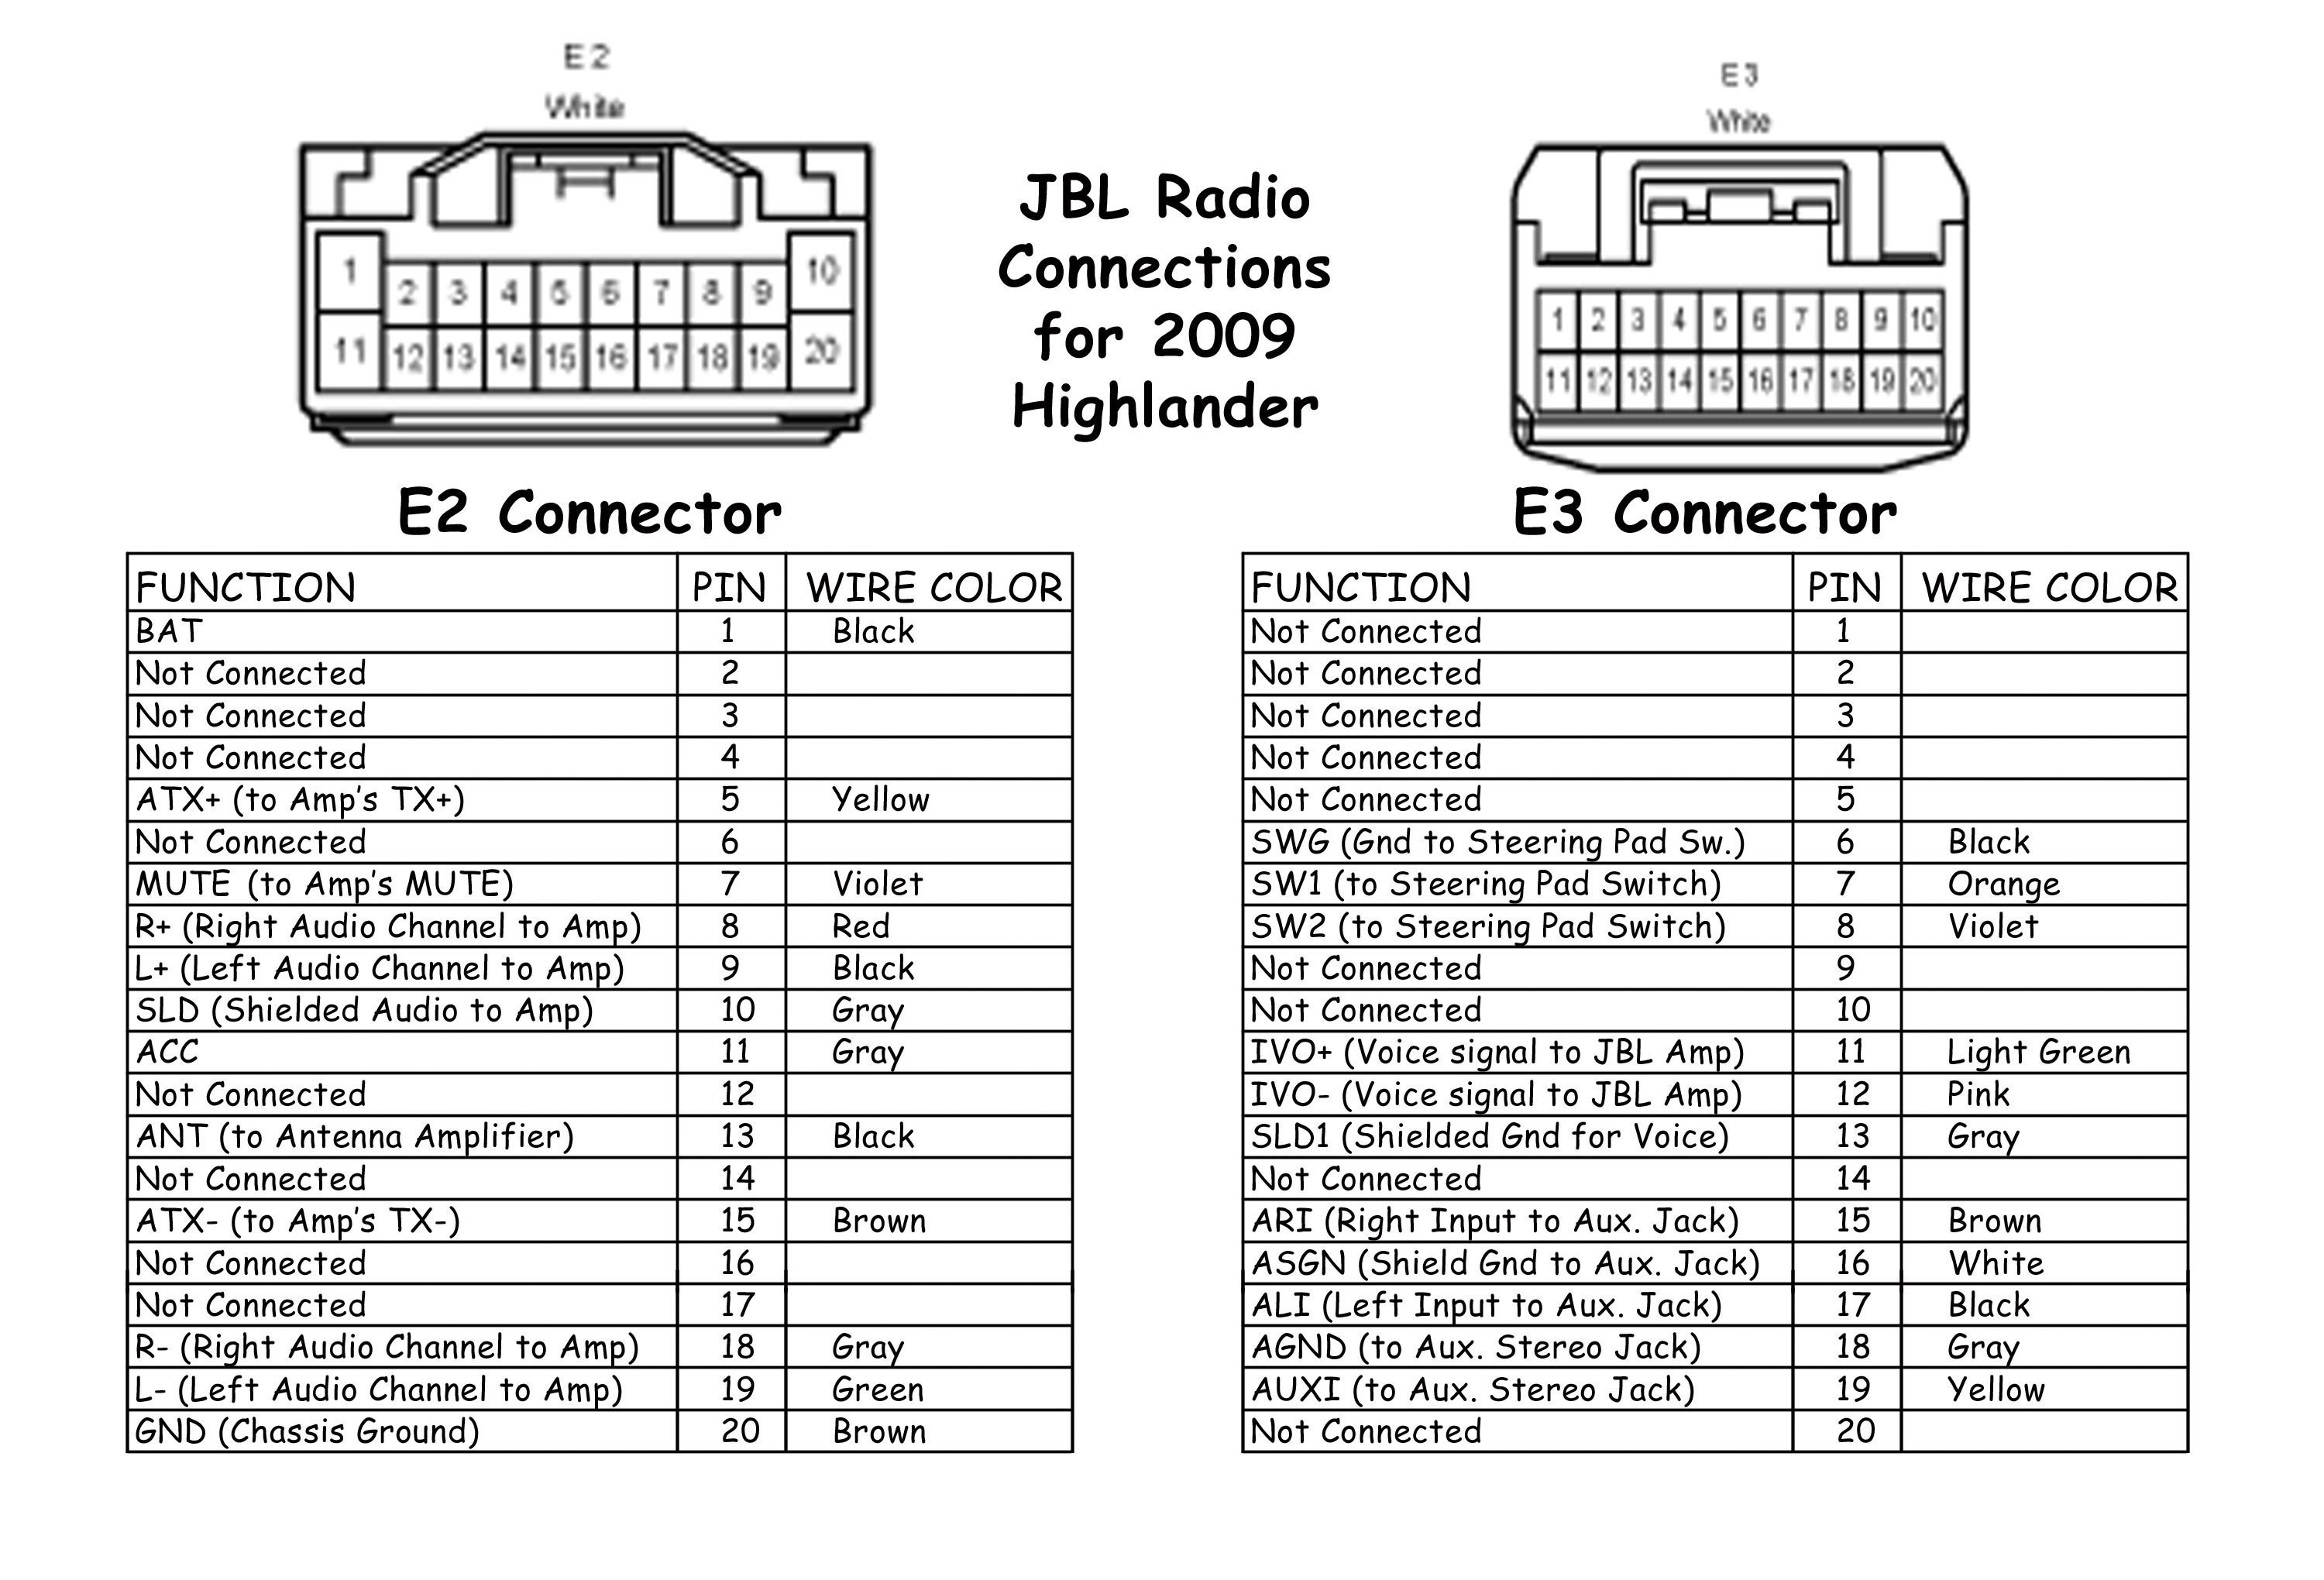 2001 audi a4 wiring diagram dc 3461  with audi a4 speed sensor location on audi a4 b5 abs  speed sensor location on audi a4 b5 abs